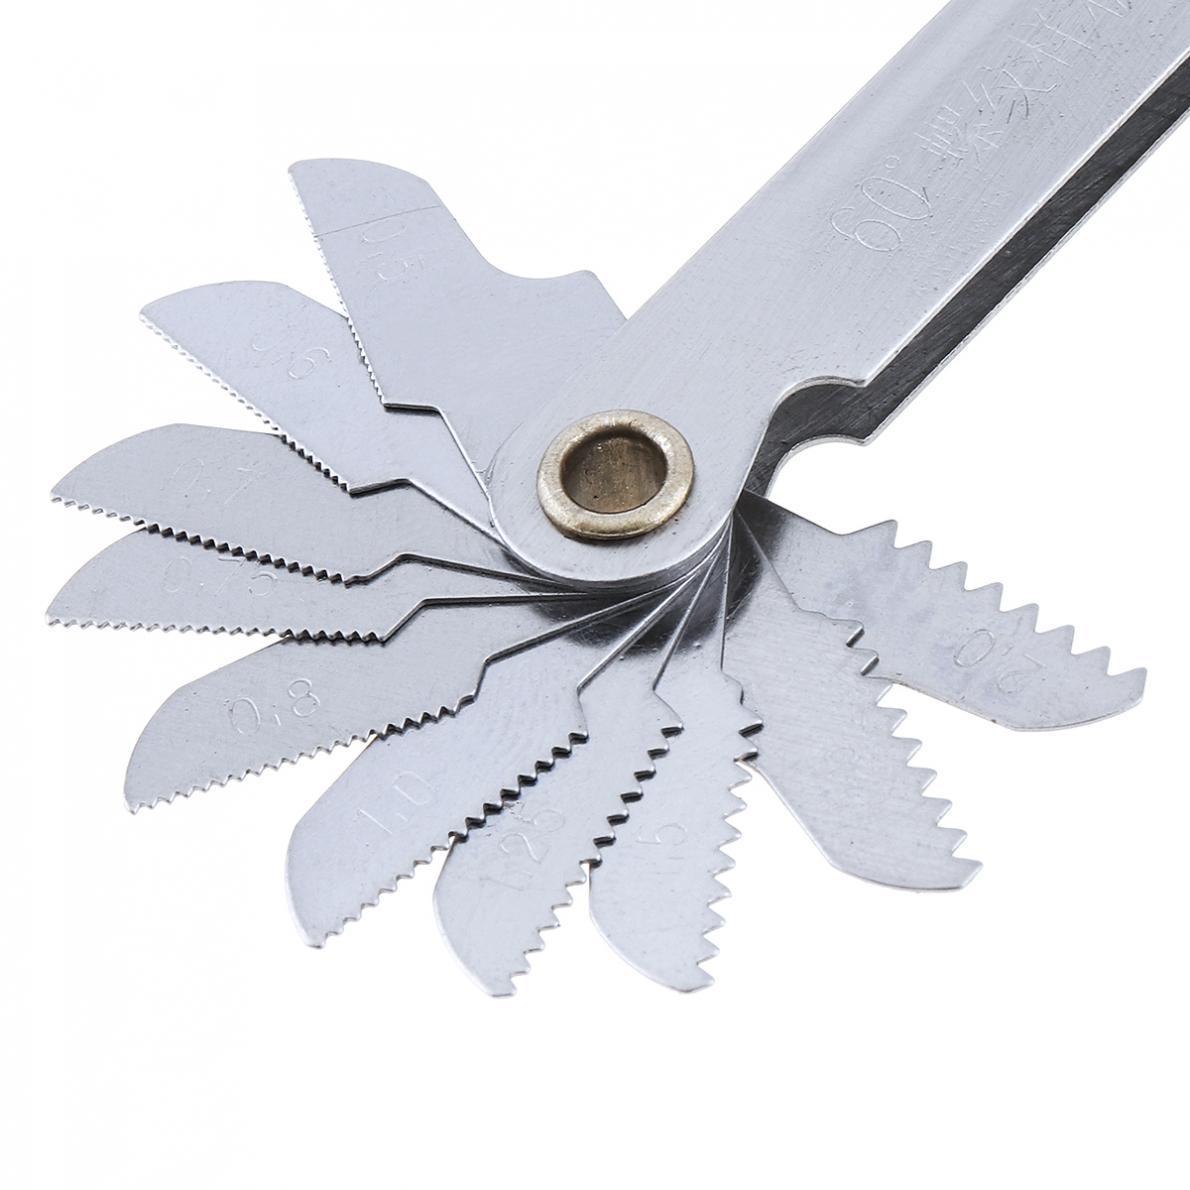 Imperial Stainless Steel Thread Gauge 20pcs//set 55 Degree Screw Pitch Gauge